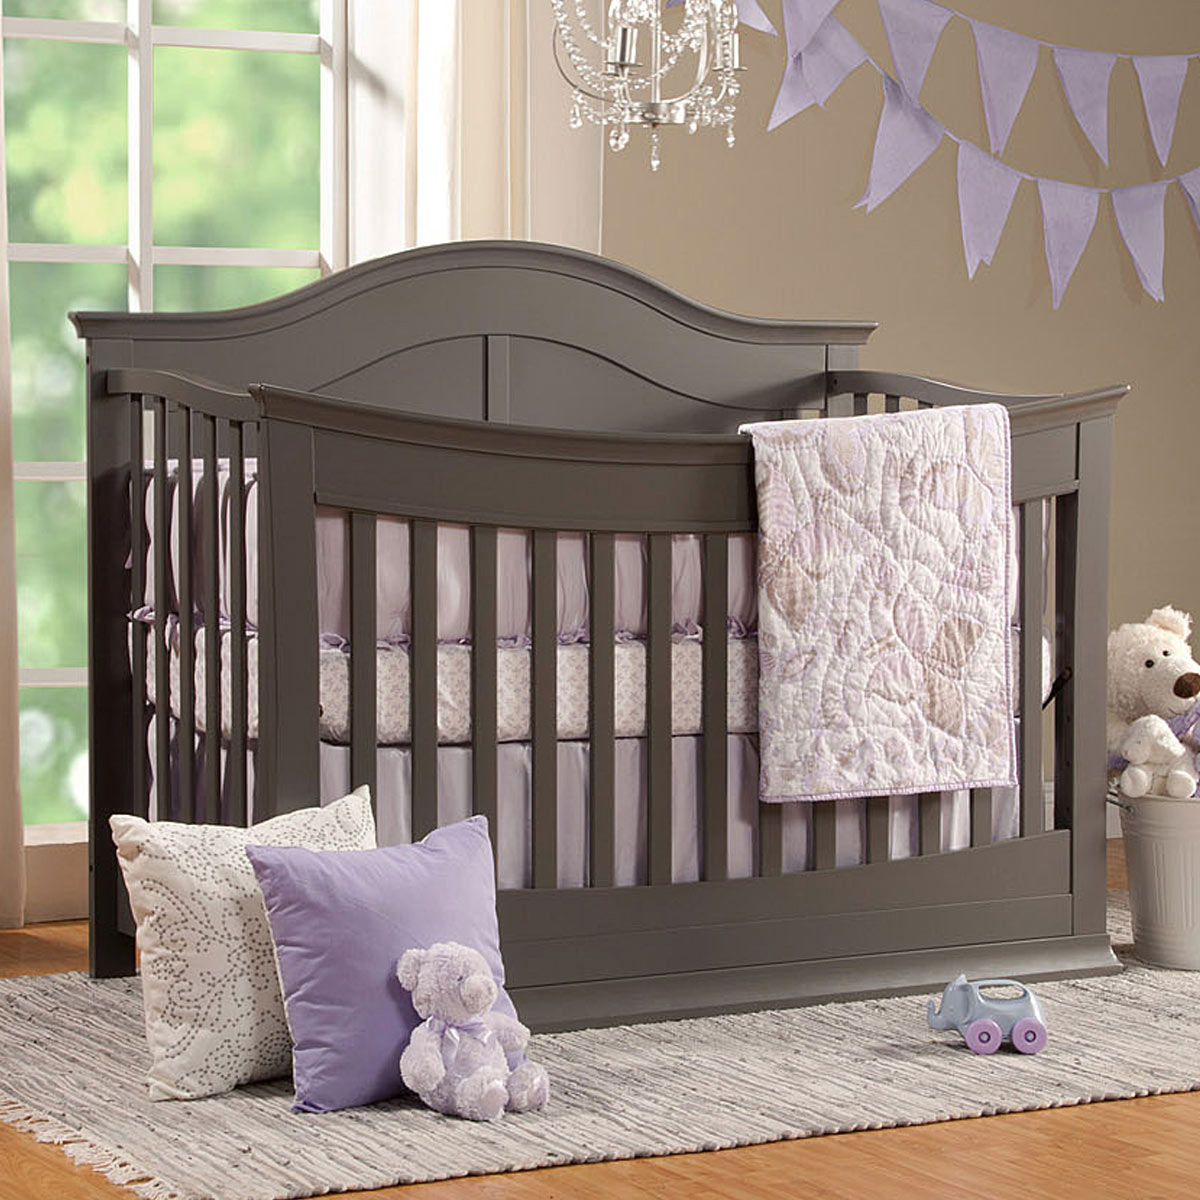 dark brown simplybabyfurniture with area carpets